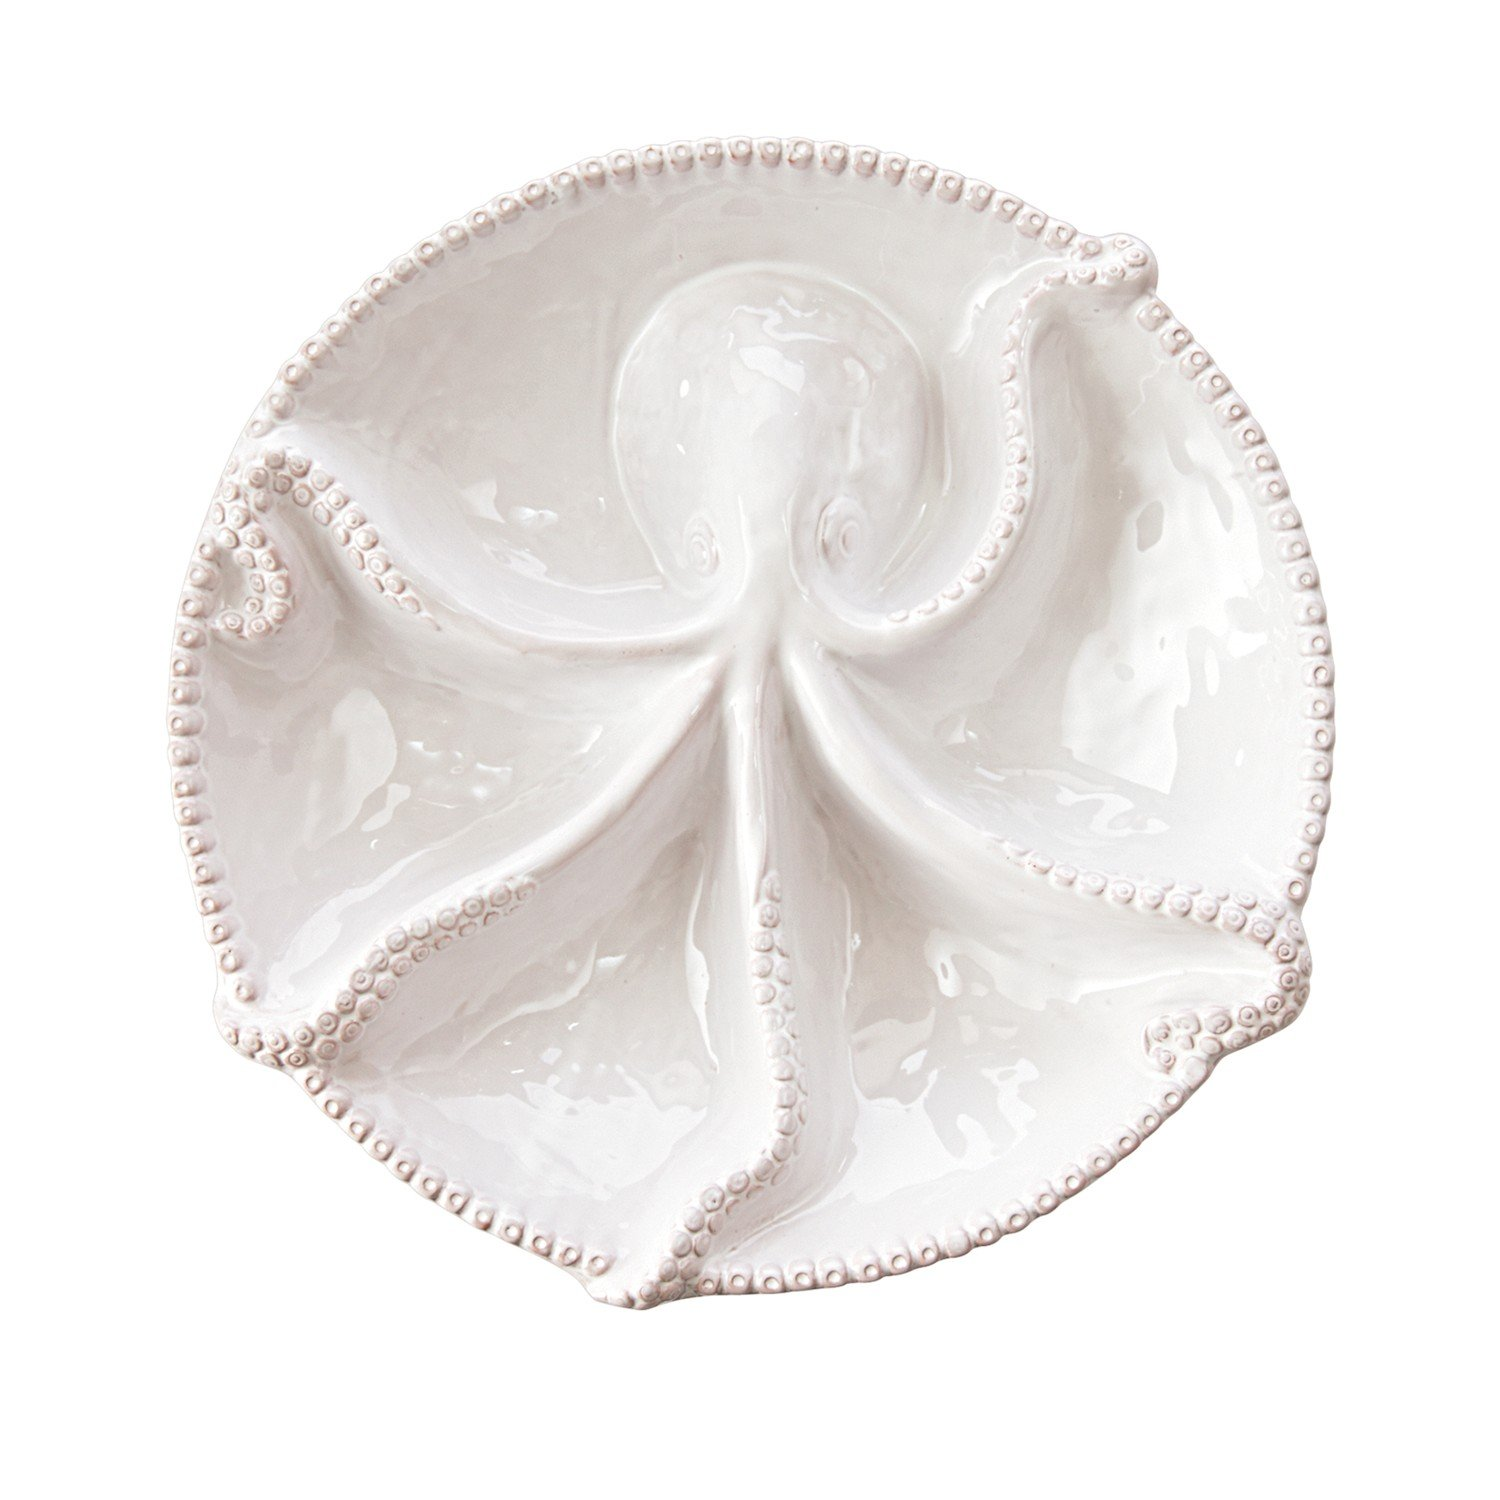 Mud Pie 4071175 Octopus Section Serving Platter Bowl, One Size, White